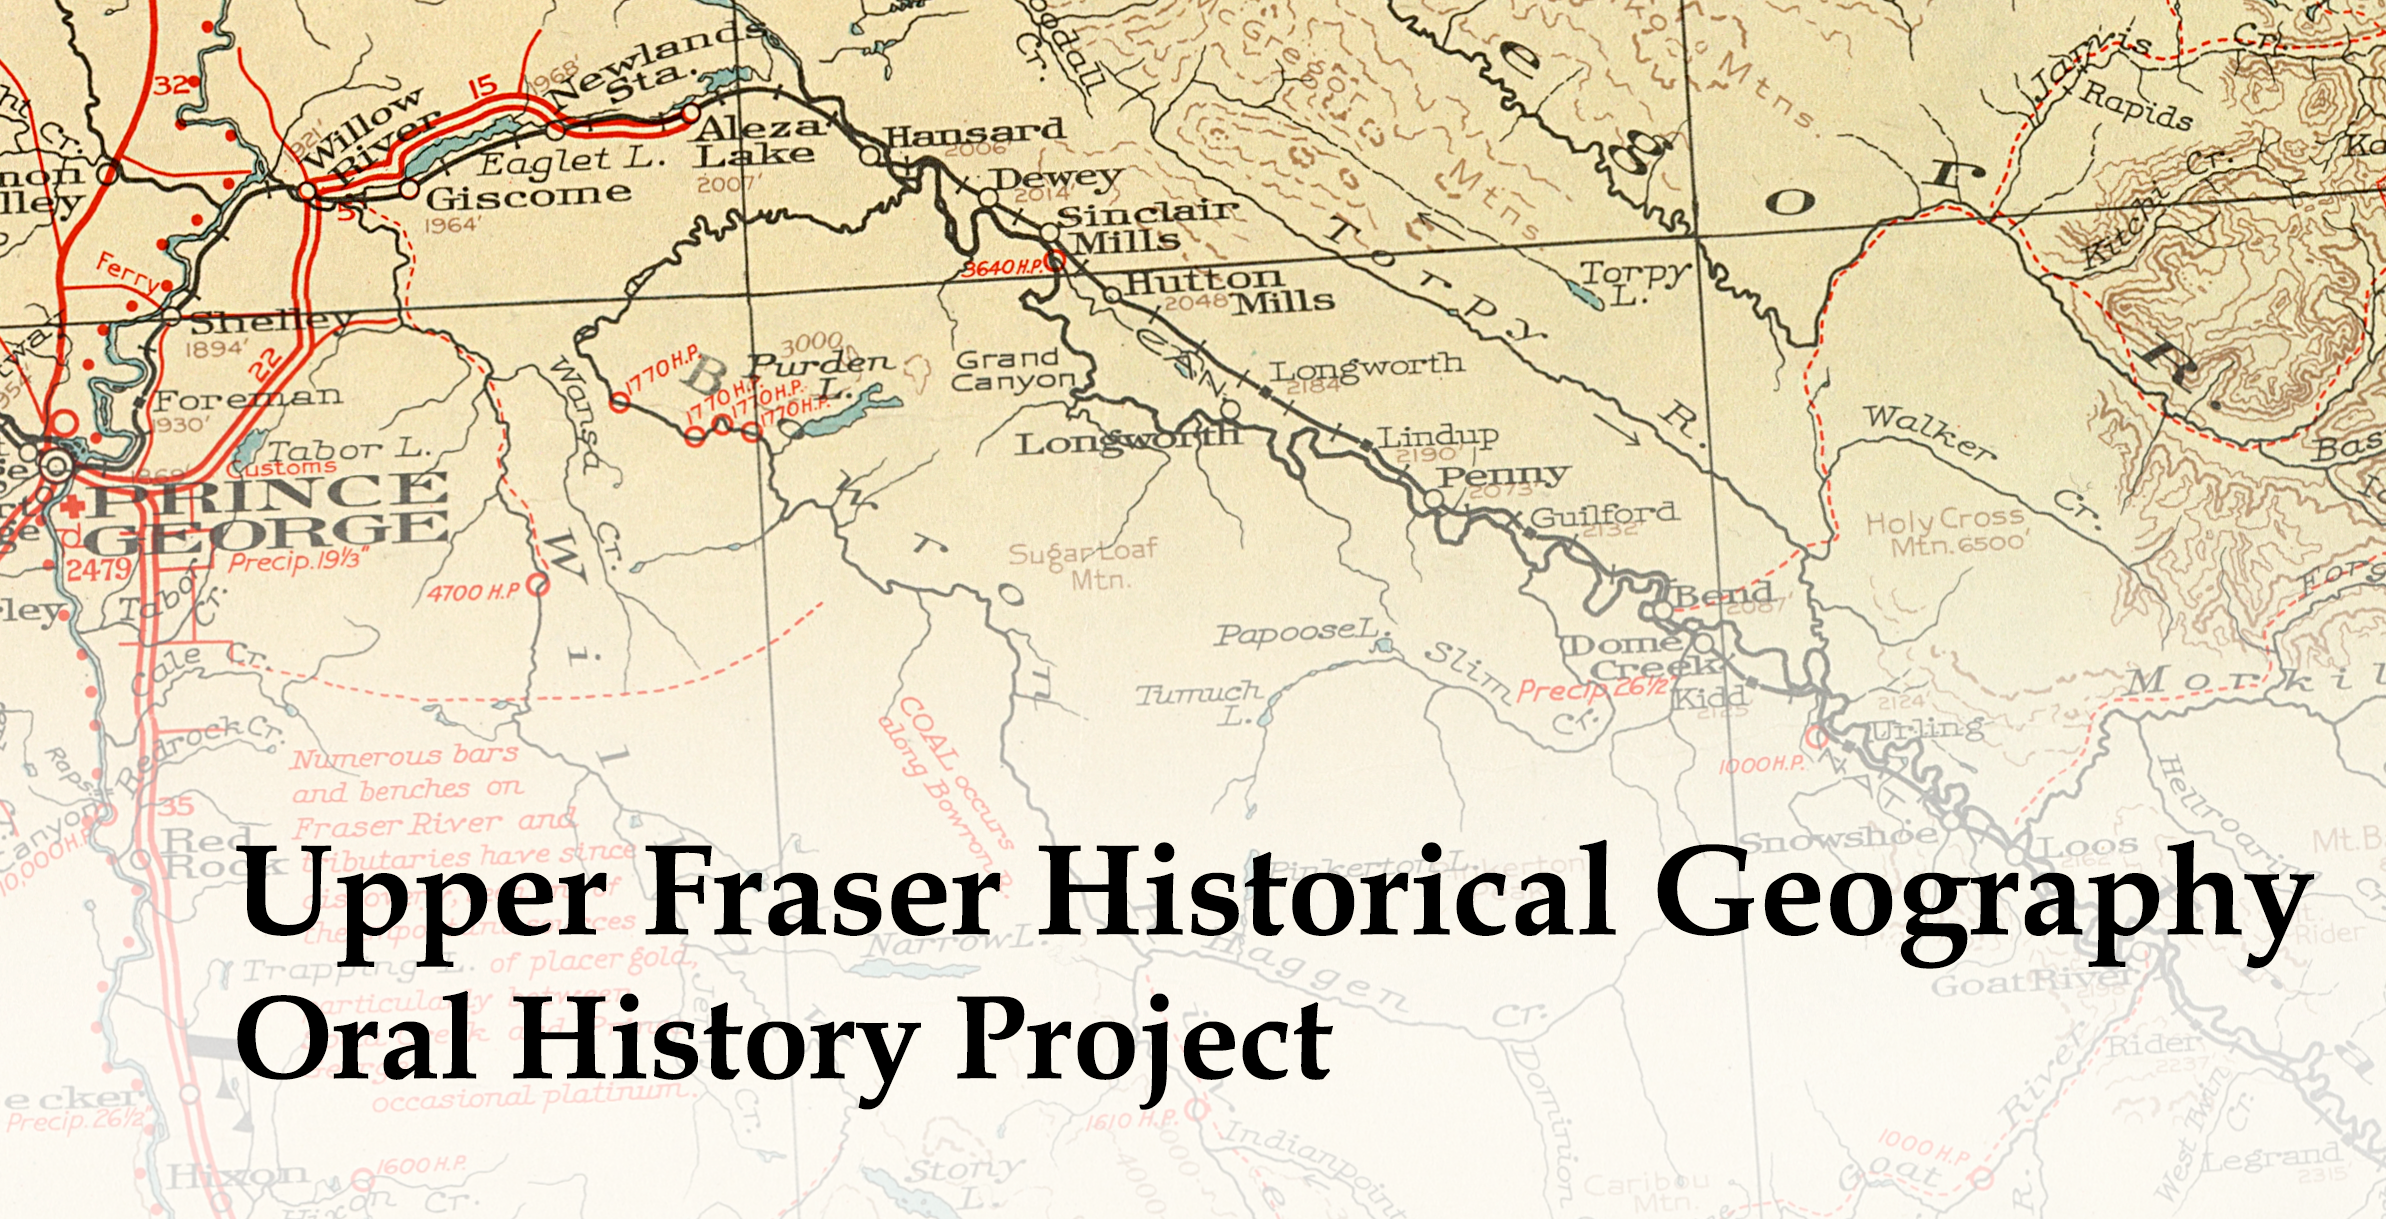 Upper Fraser Historical Geography Project